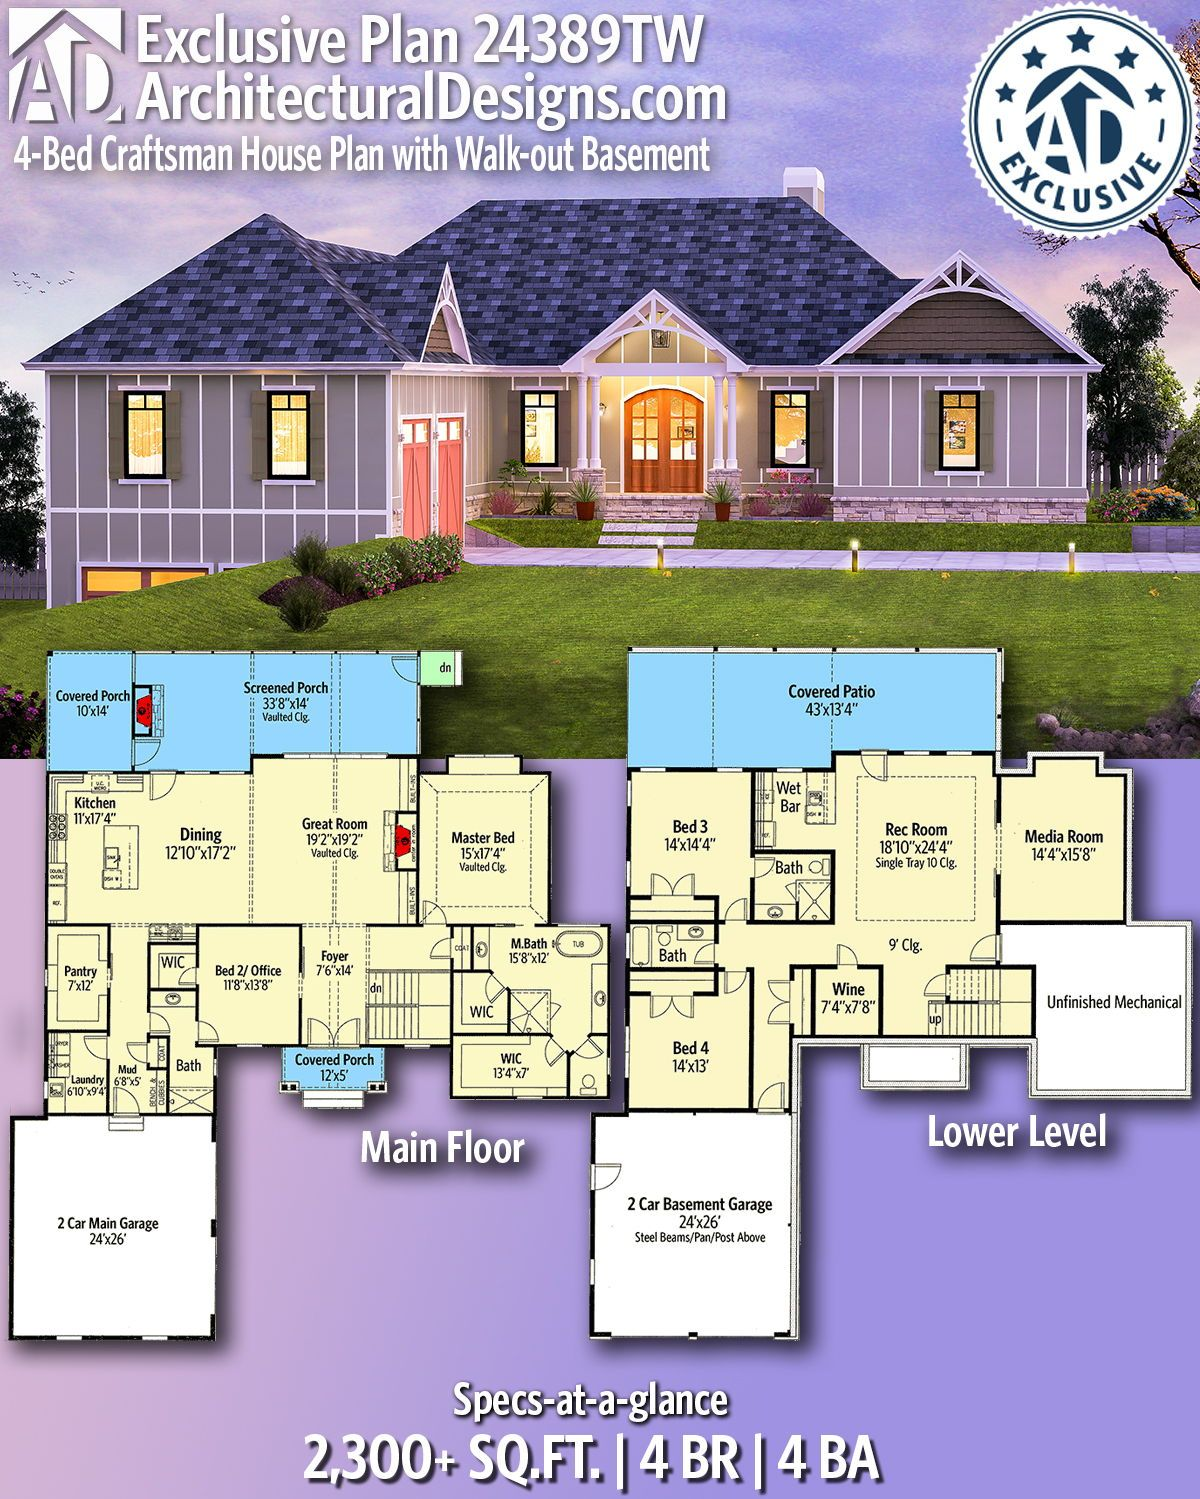 Plan 24389tw 4 Bed Craftsman House Plan With Walk Out Basement Basement House Plans Ranch House Plans House Plans